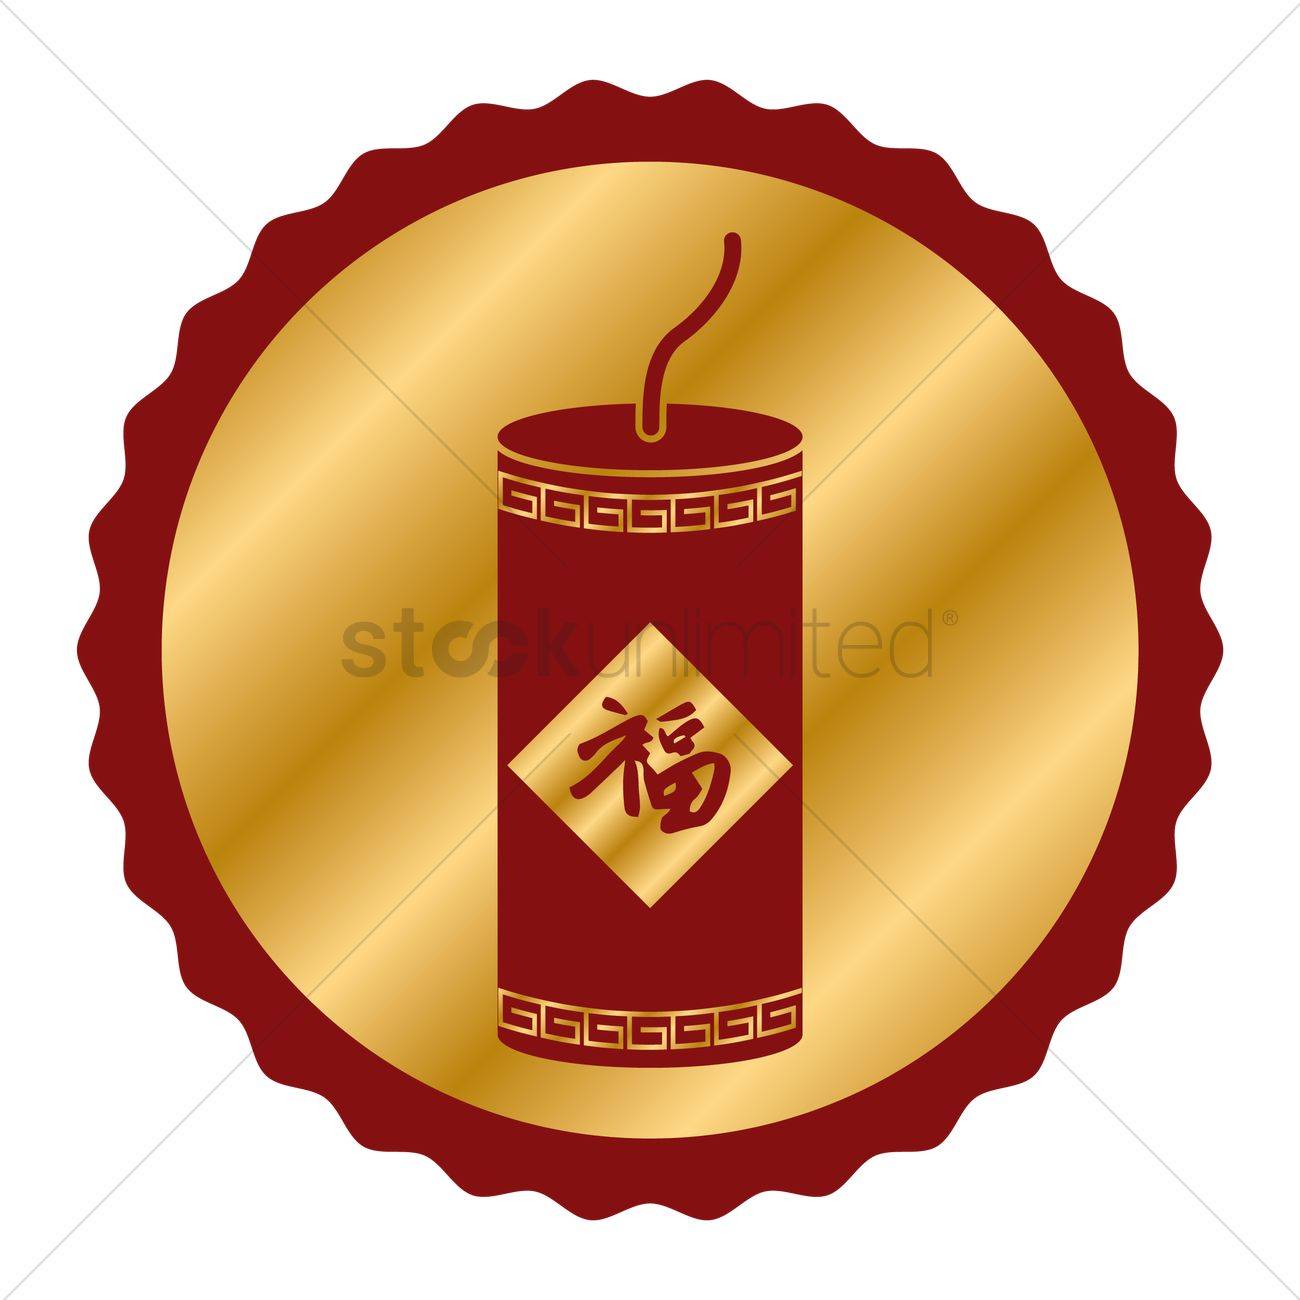 Chinese New Year Fire Crackers Vector Image 1403035 Stockunlimited